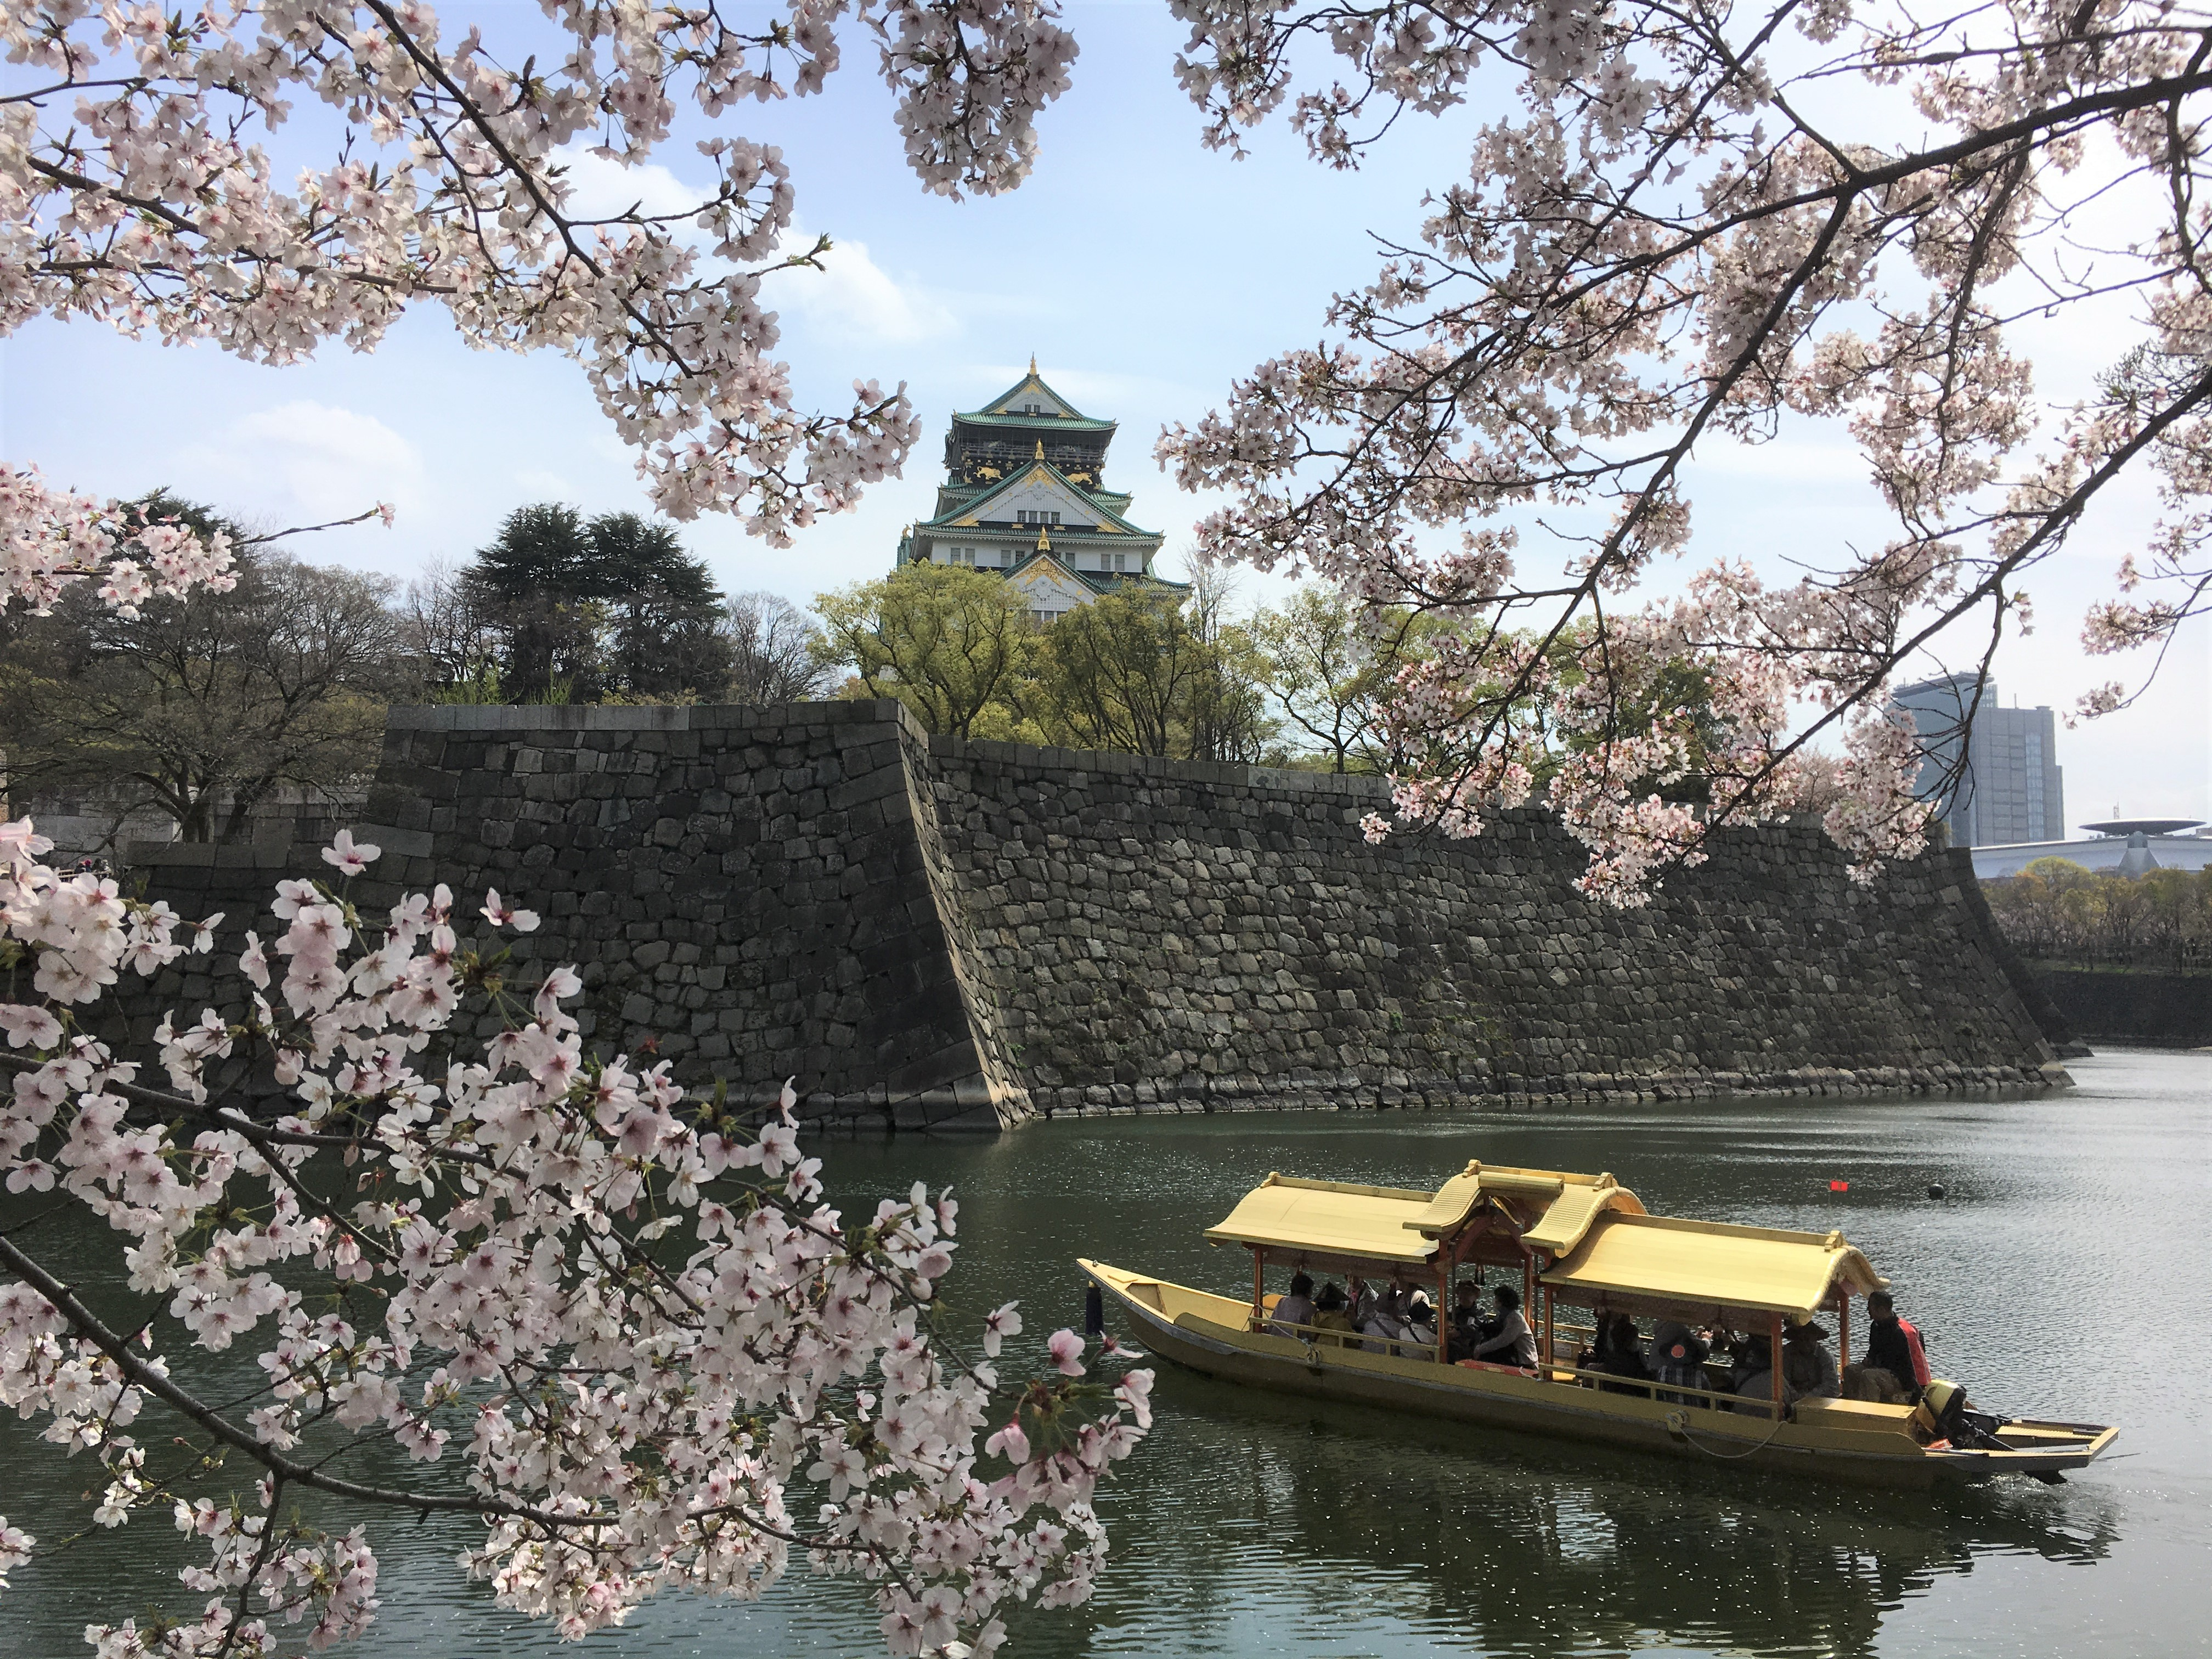 view of Osaka castle golden roofed boat and cherry blossoms